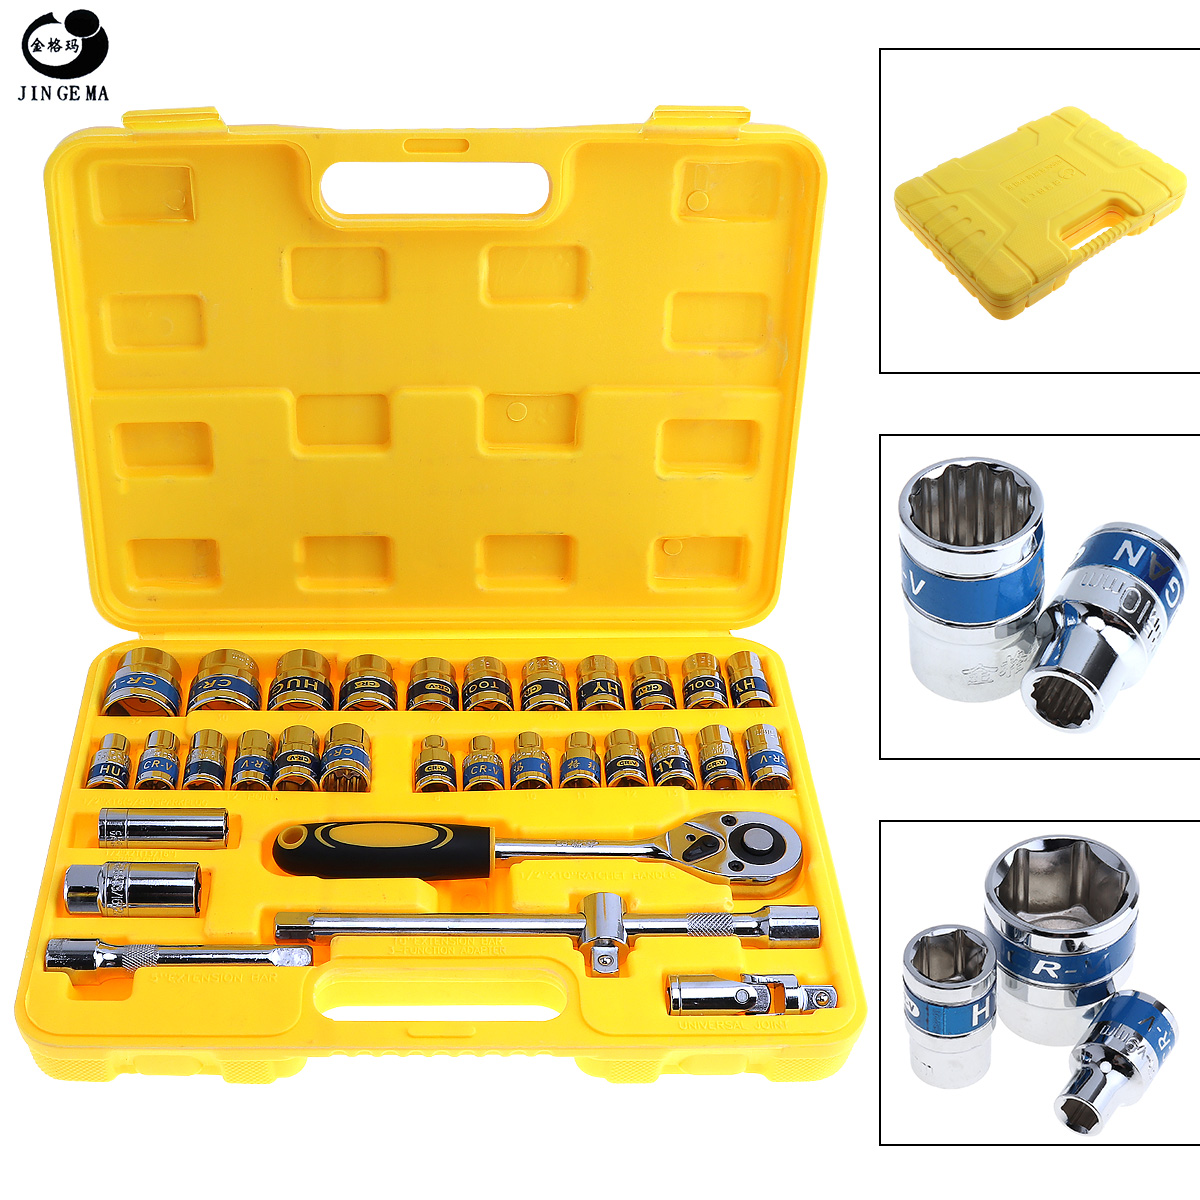 Sale 32pcs/set 1/2 Inch Automobile Motorcycle Car Repair Tool Box Precision Socket Wrench Set Ratchet Torque Wrench Combo Kit jetech 15pcs 1 2 dr metric socket wrench set with ratchet extention bar 5 inch kit ferramenta car tool sets lifetime guarantee